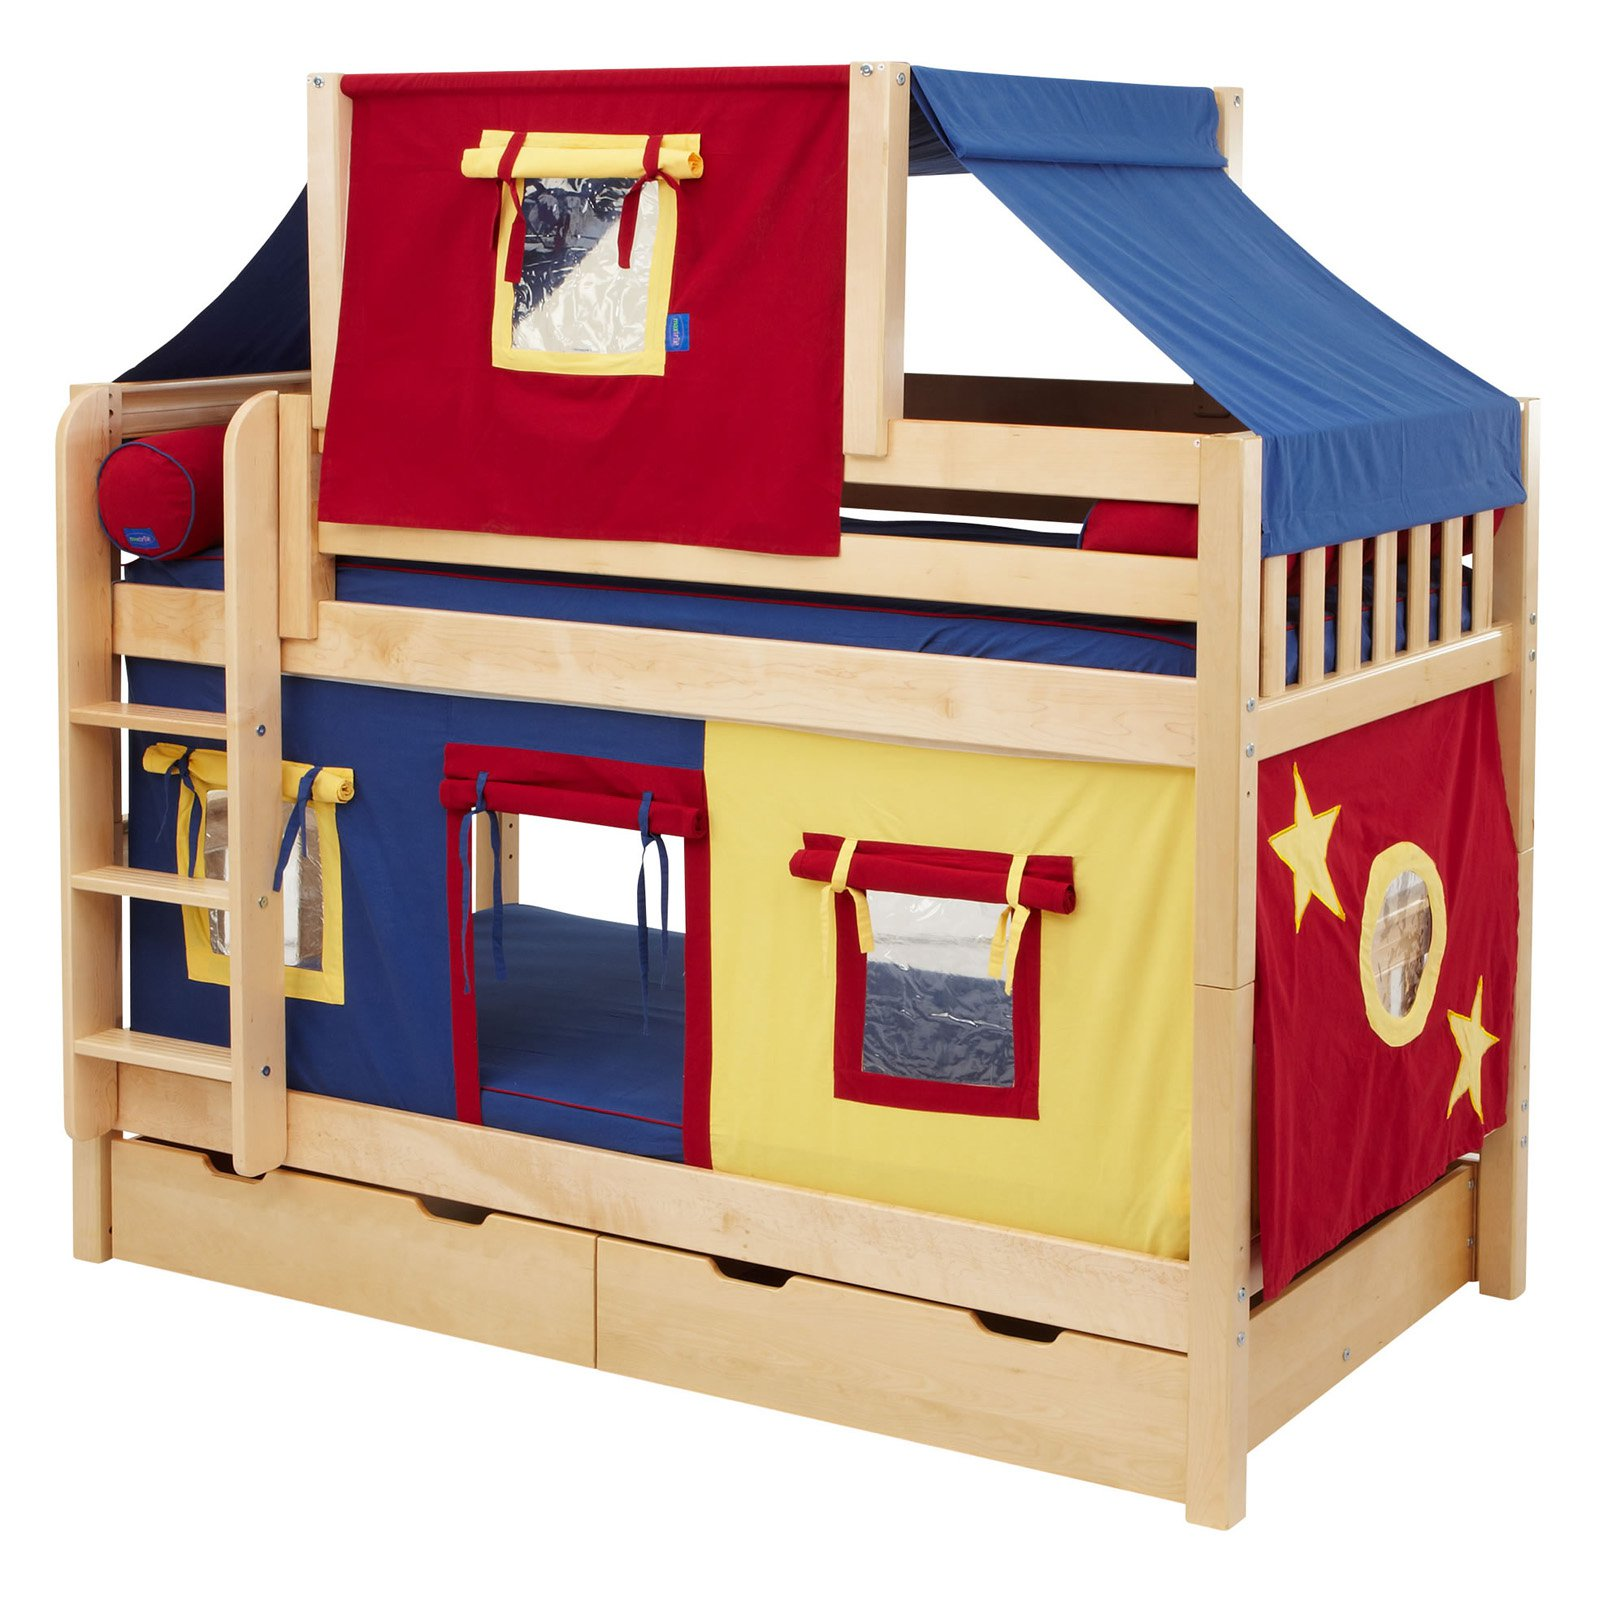 Charmant Hot Shot Boy Twin Over Twin Deluxe Tent Bunk Bed   Walmart.com